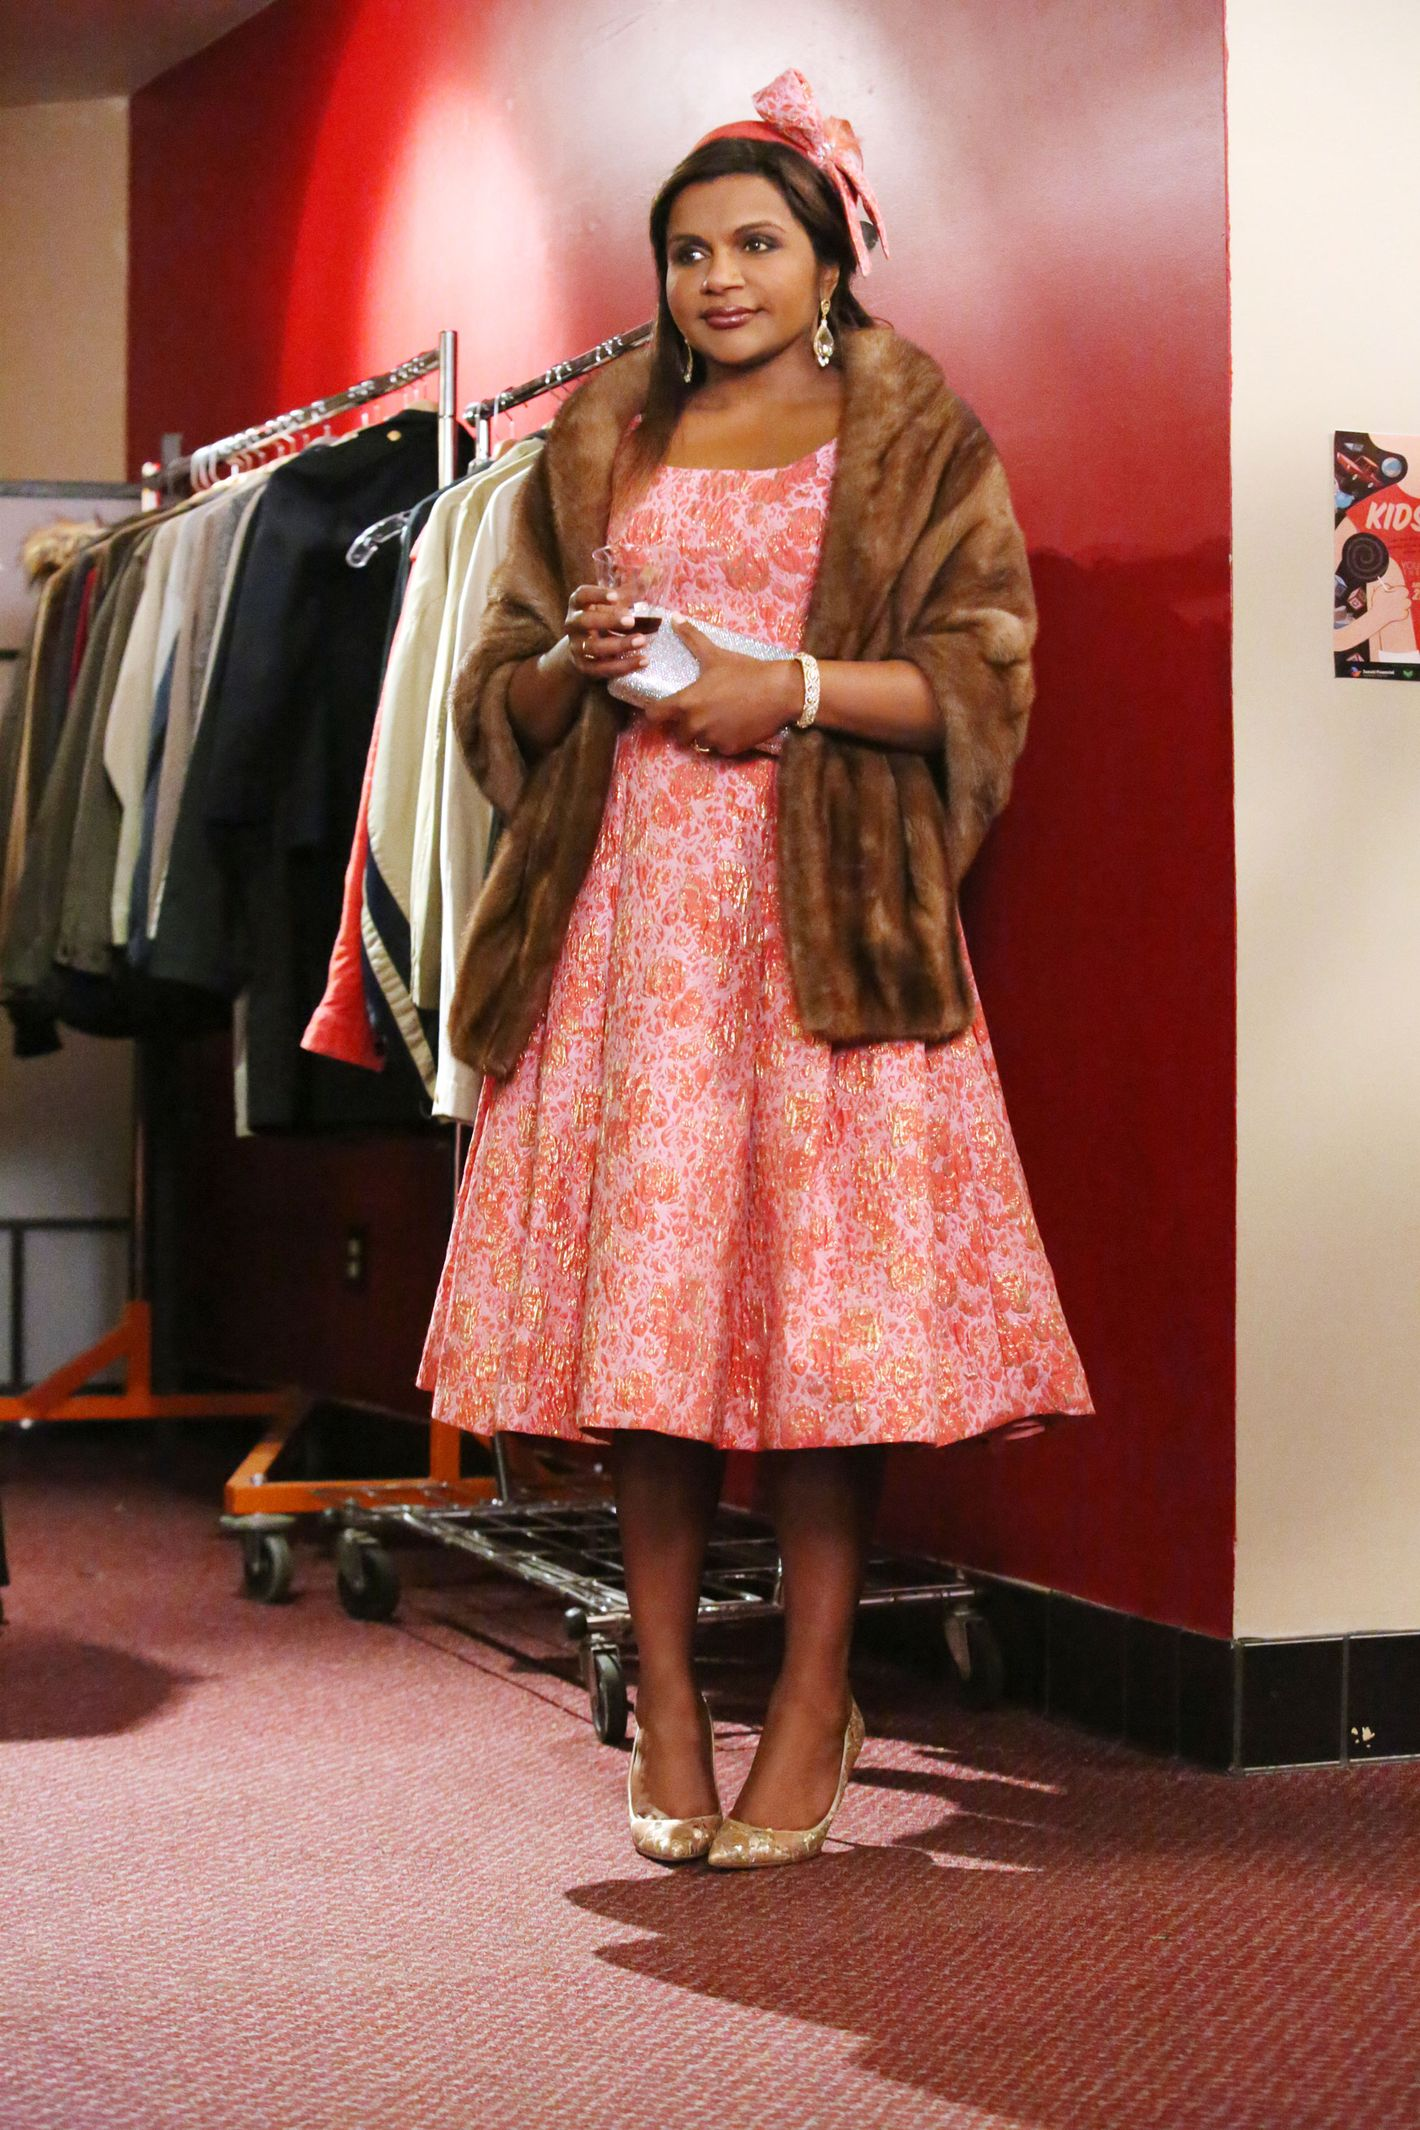 The Mindy Project The Signature Looks And Fashion Of Mindy